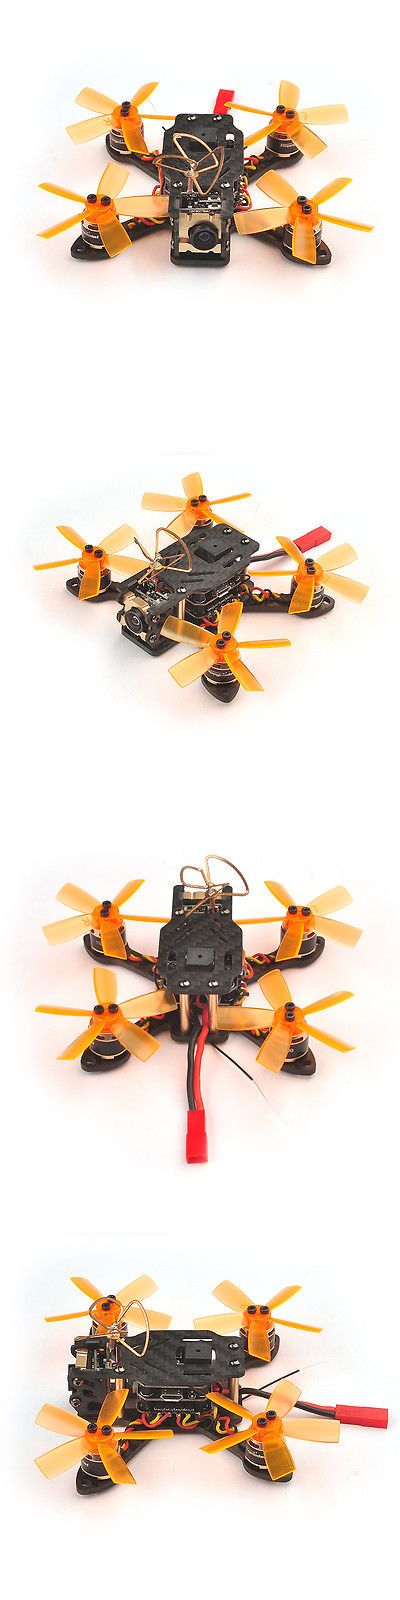 Radio Control 51029: Toad 90 Micro Fpv Racing Drone F3 Dshot Bnf Fc W Frsky Flysky Dsm2 X Rx Receiver -> BUY IT NOW ONLY: $111.59 on eBay!